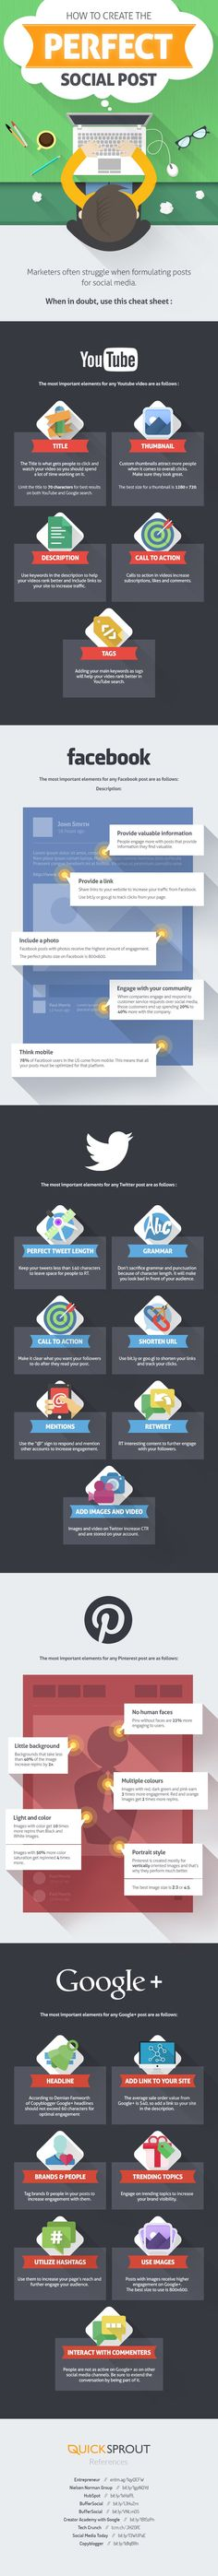 The perfect social media post!! [Infographic]